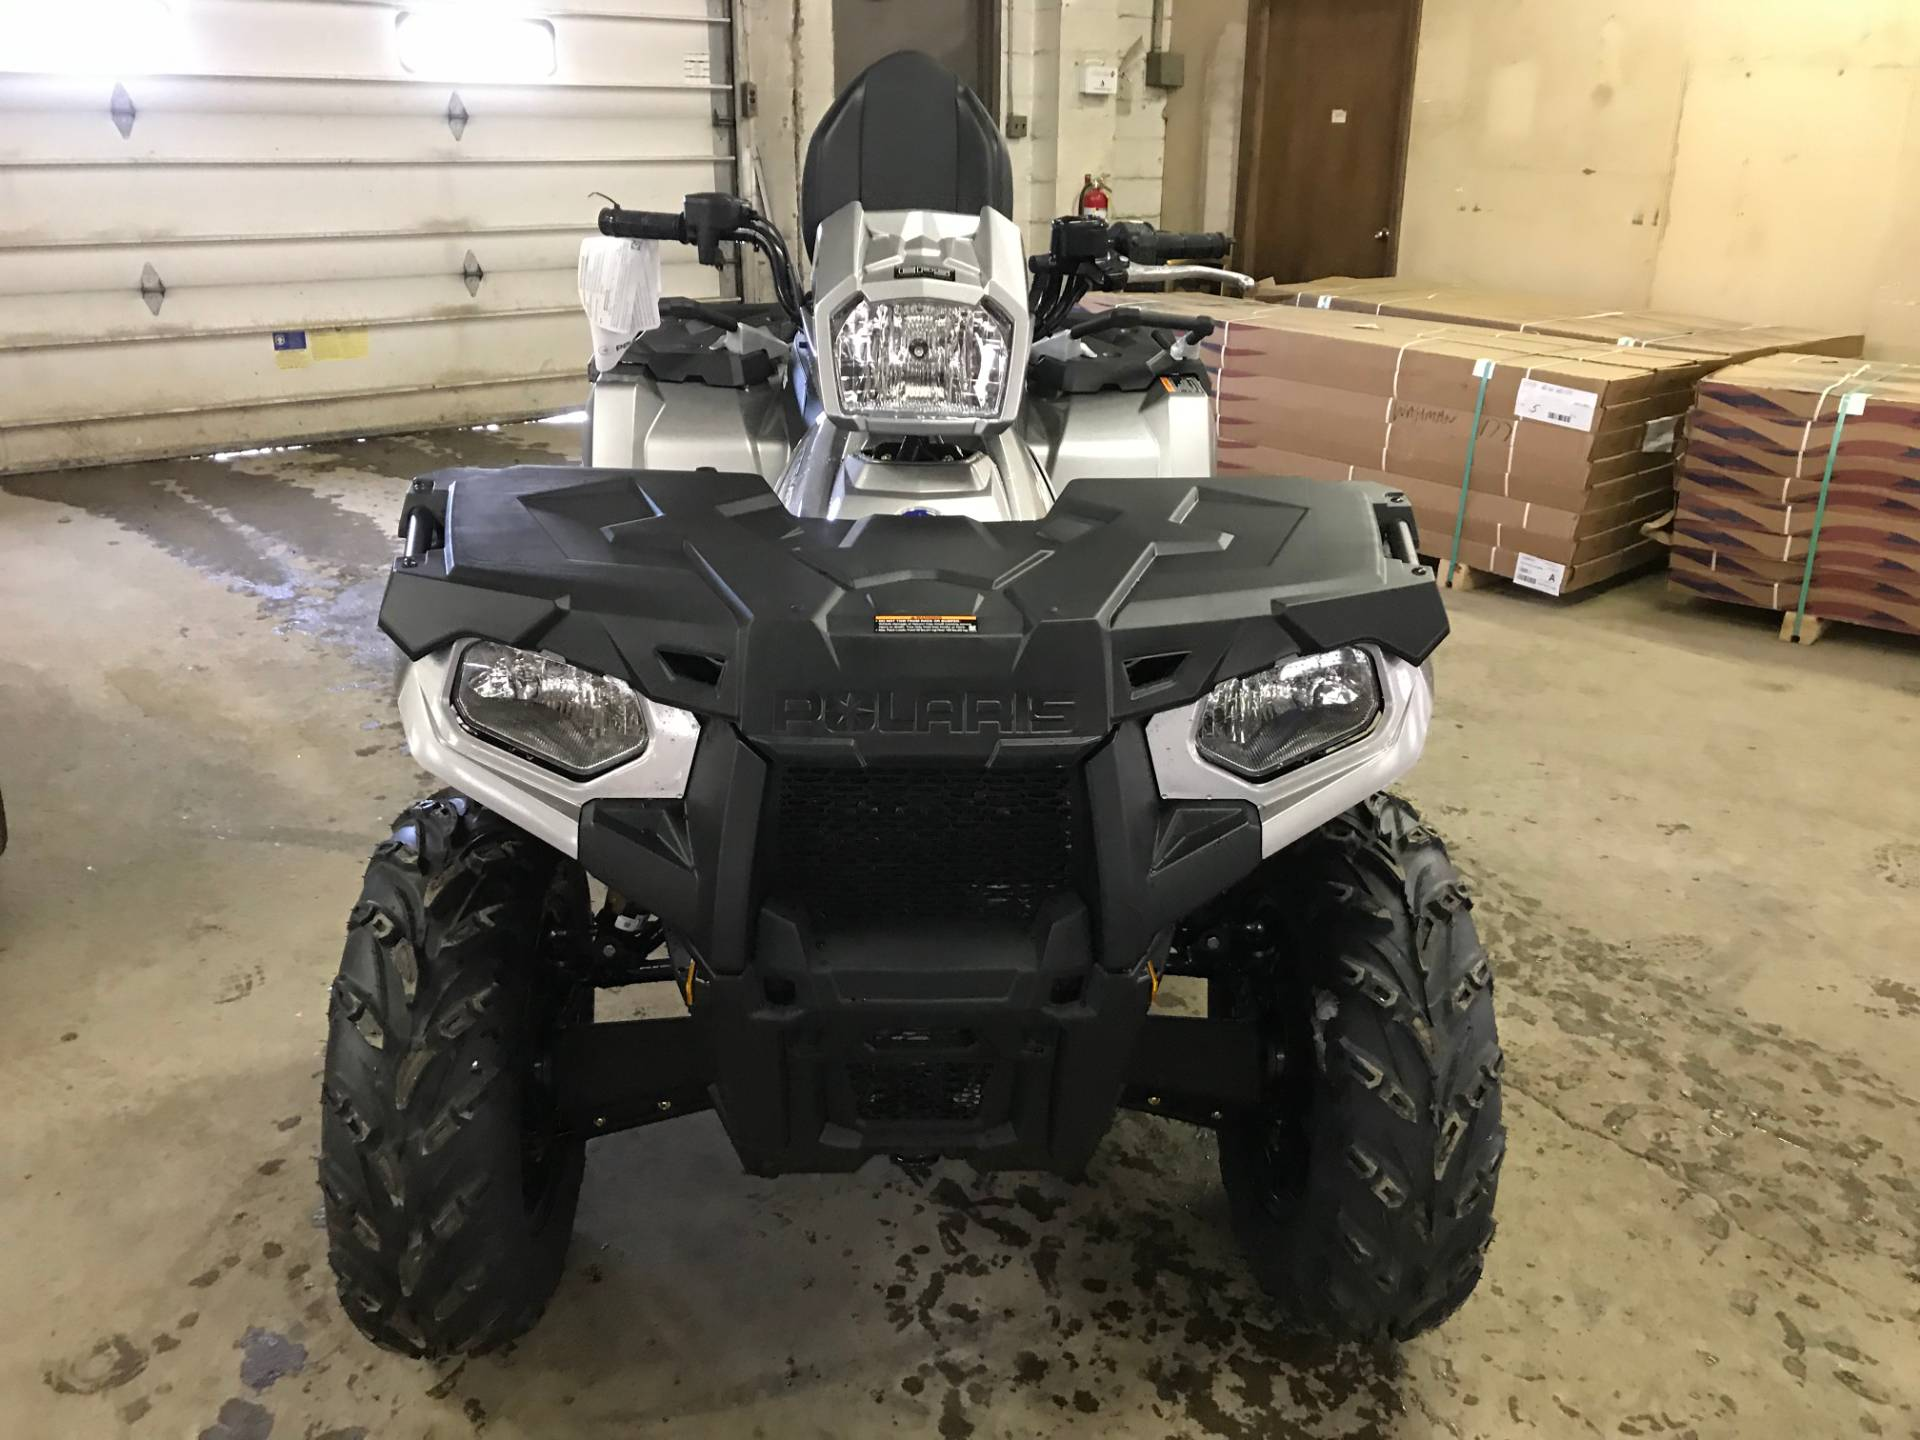 2019 Polaris Sportsman Touring 570 SP in Chicora, Pennsylvania - Photo 2